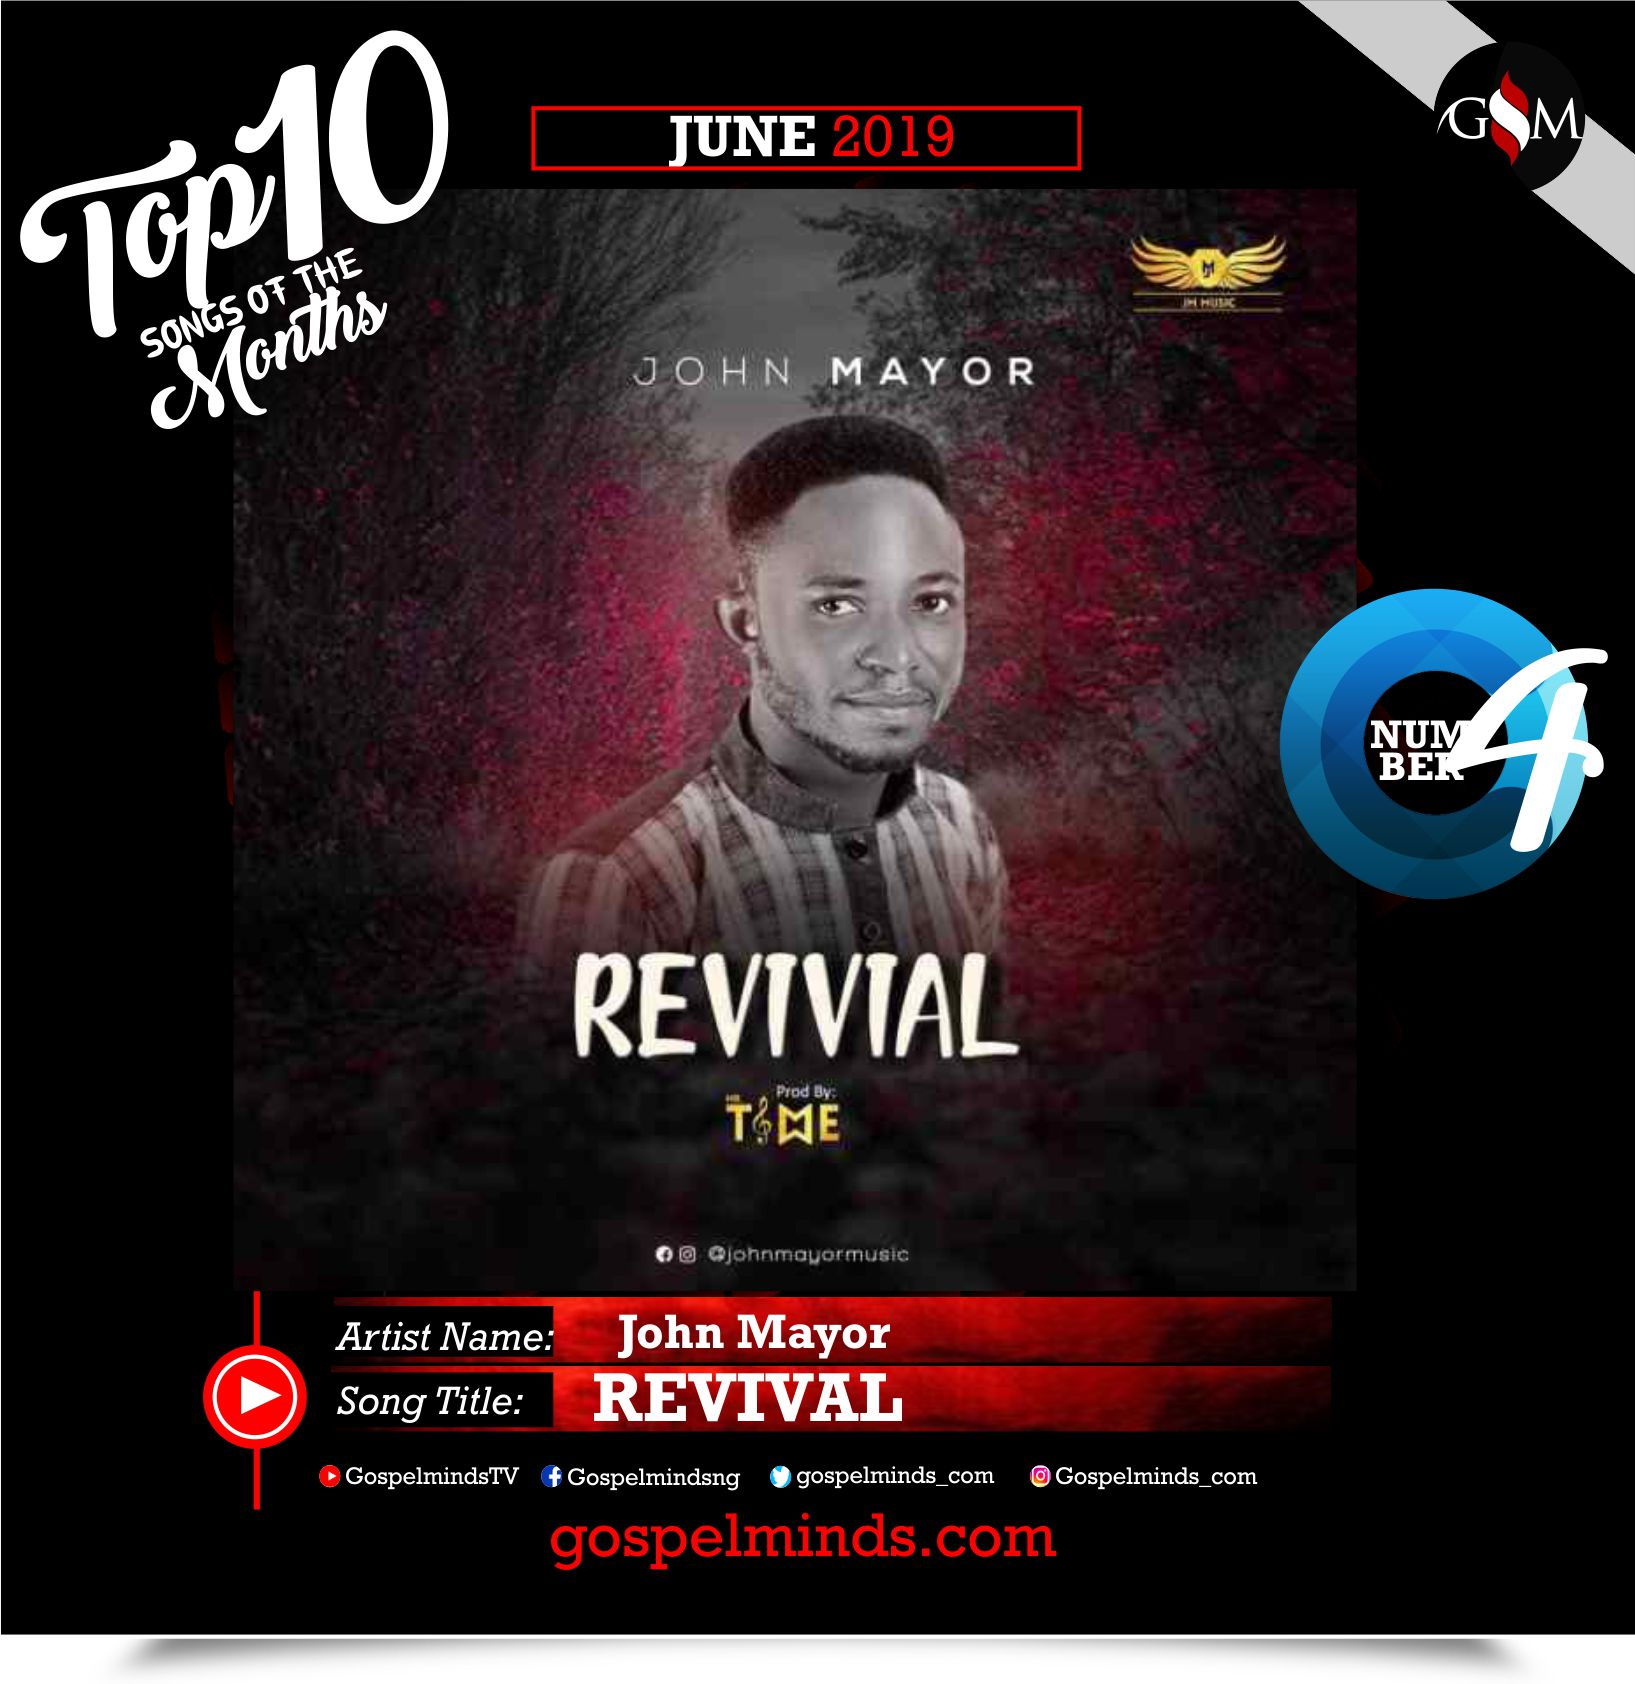 Top 10 Gospel Songs of The Month - June 2019 GospelMinds Ent. (John Mayor - Revival)